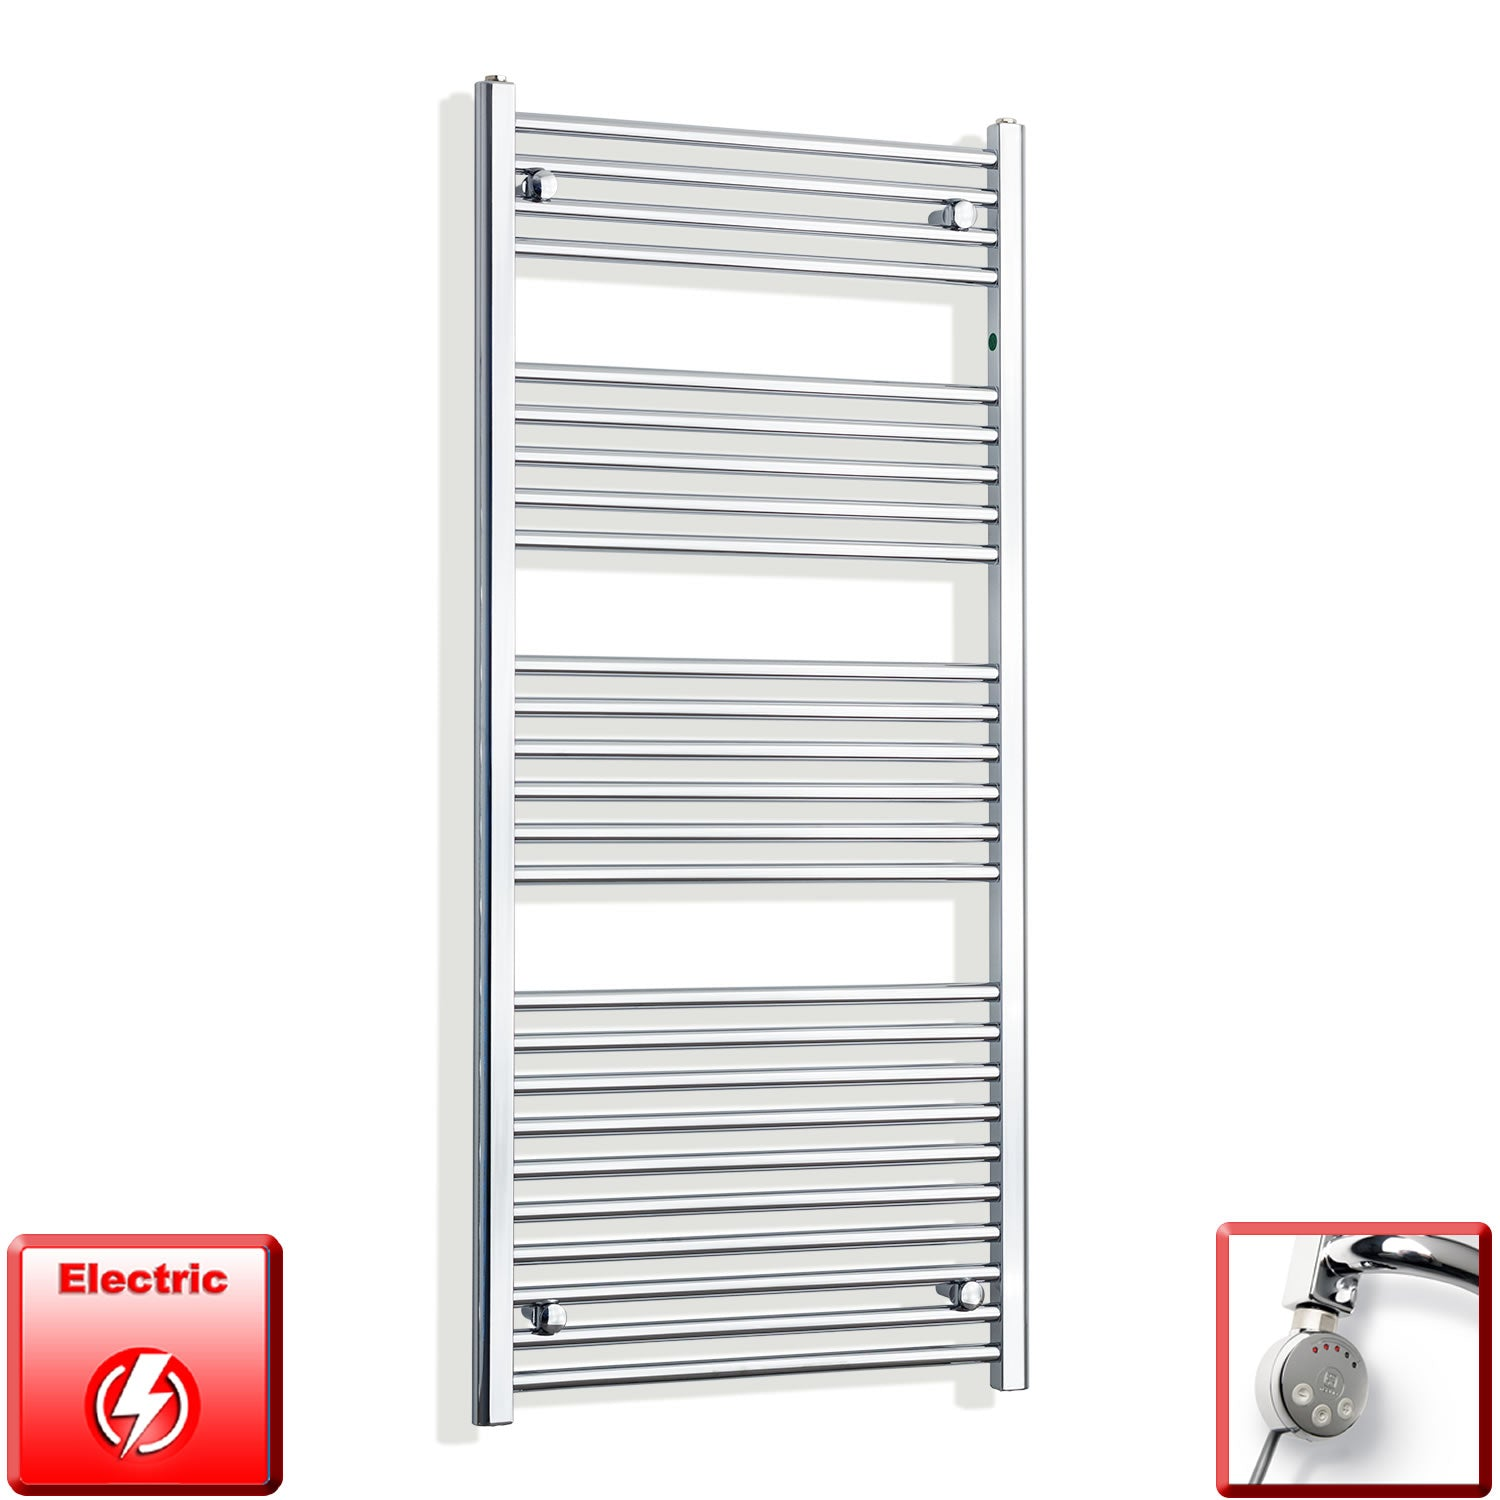 650mm Wide 1400mm High Pre-Filled Chrome Electric Towel Rail Radiator With Thermostatic MEG Element